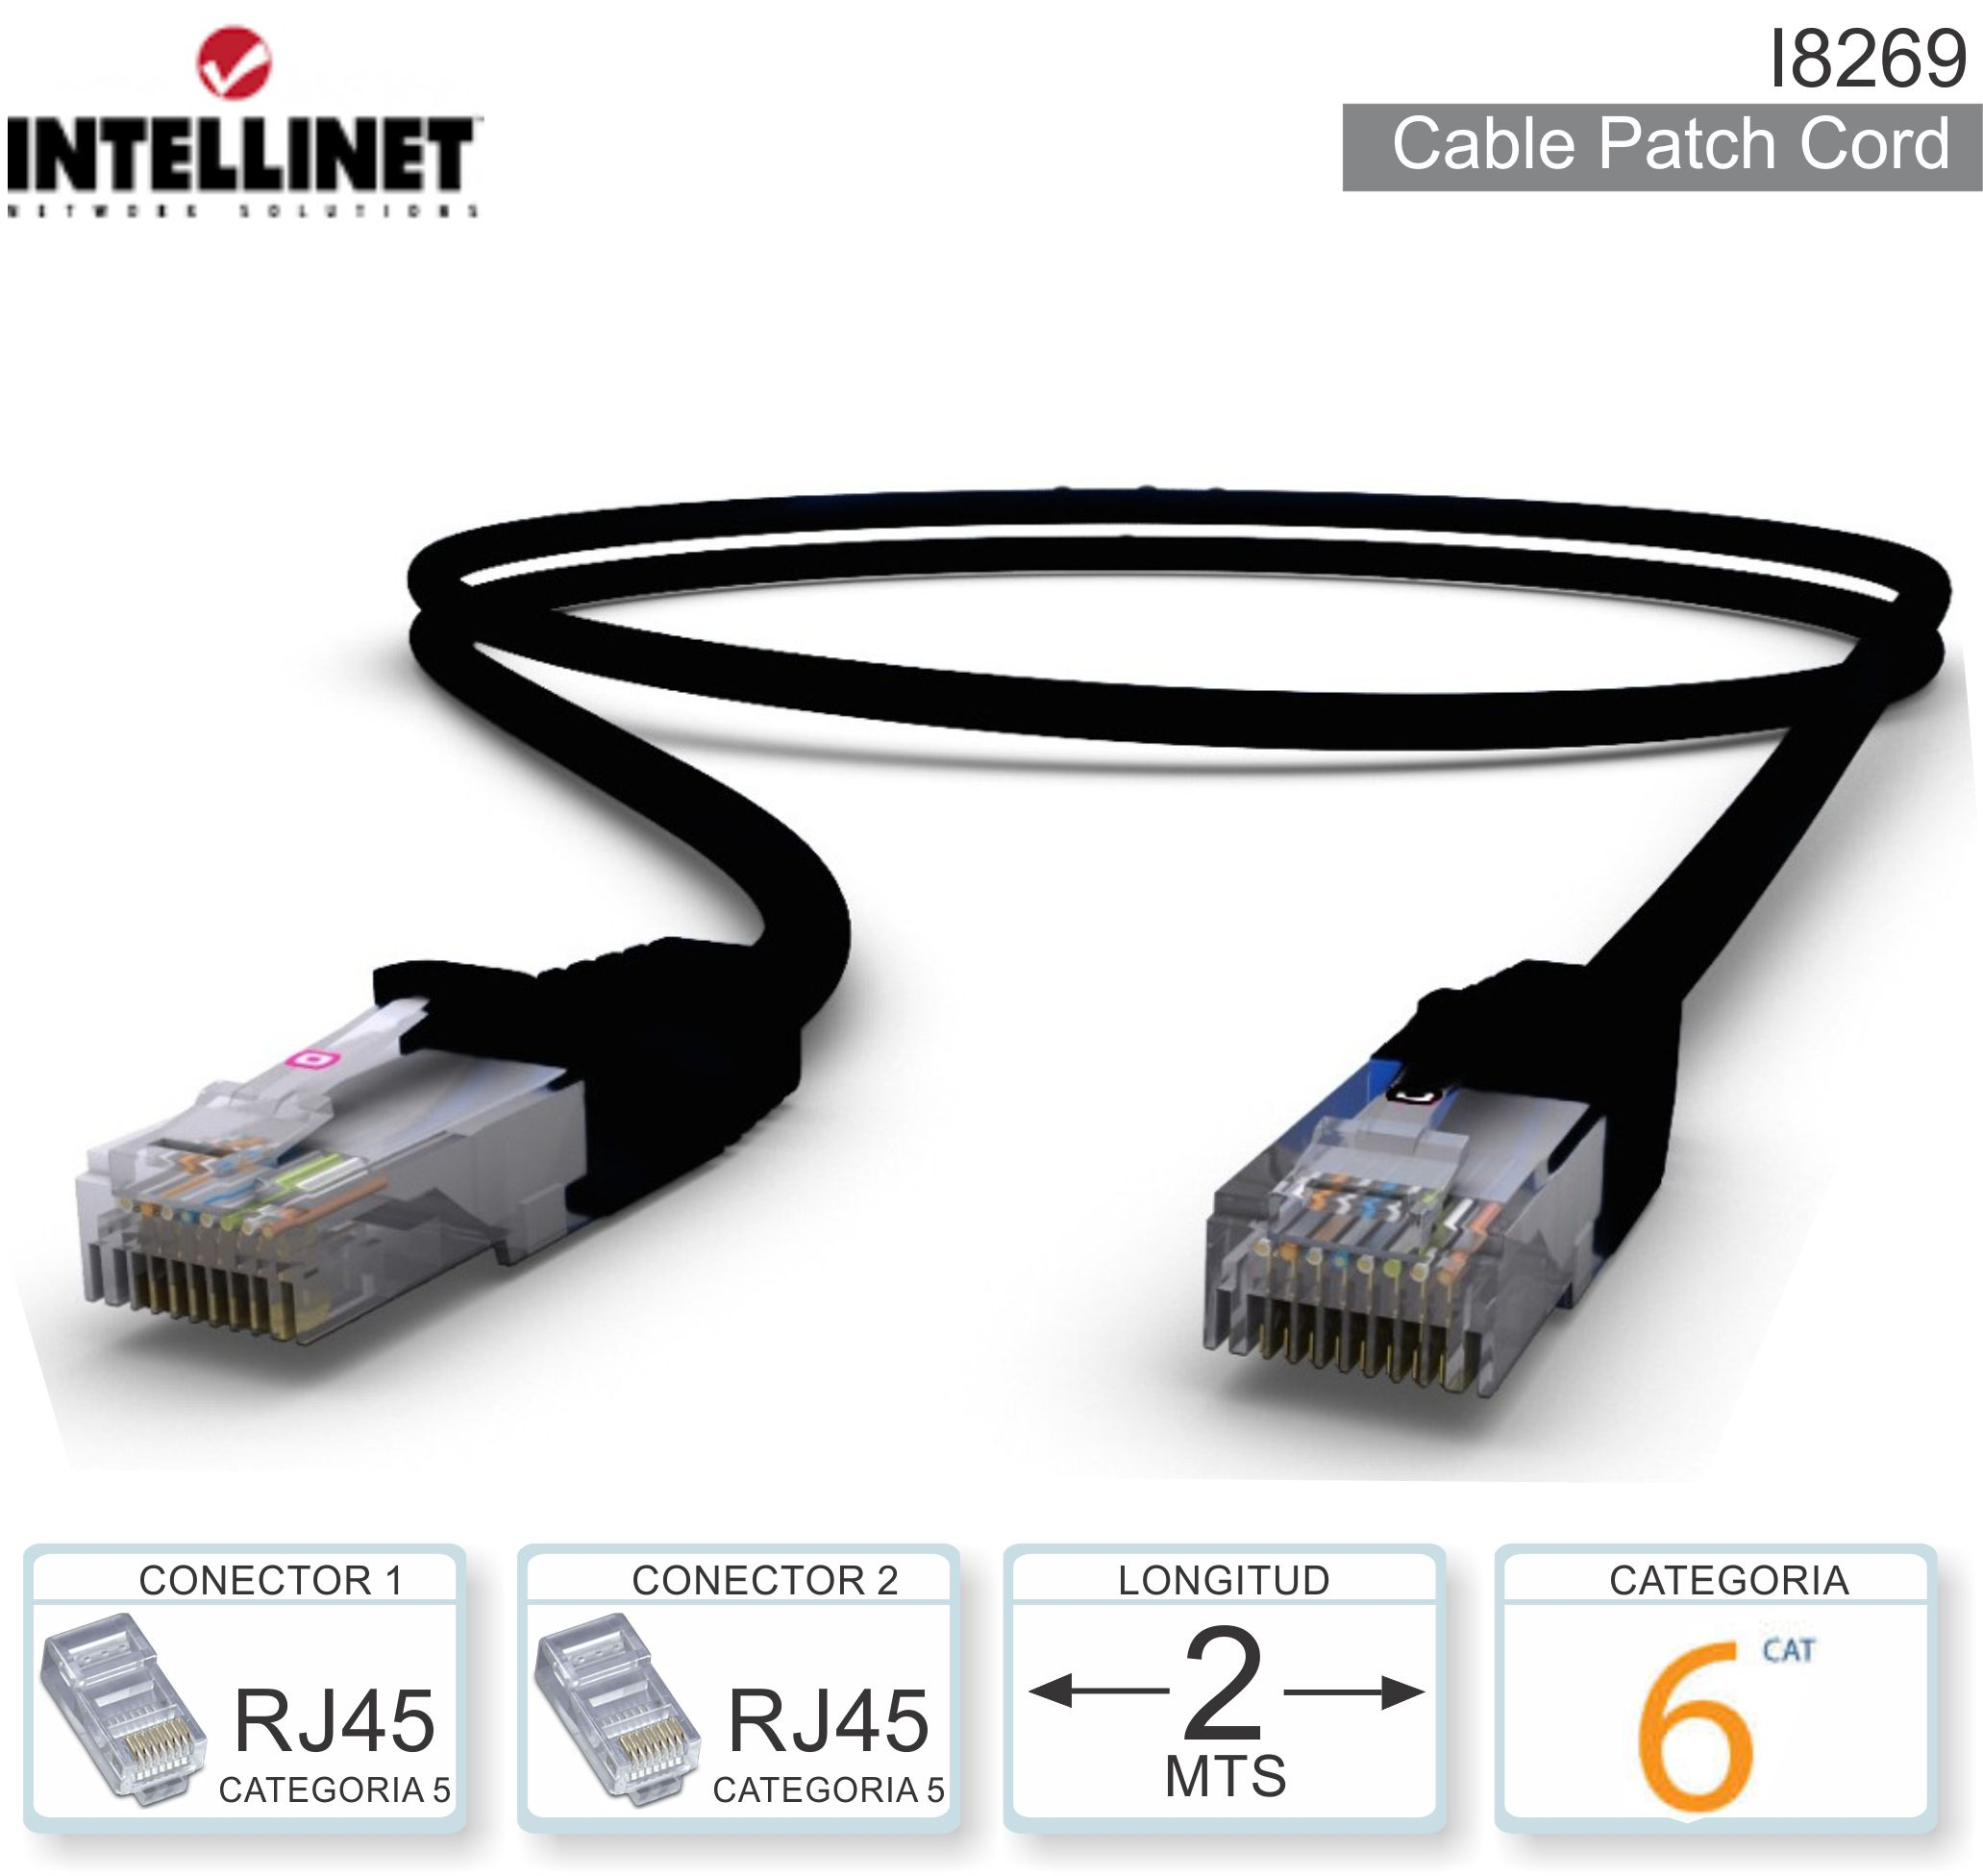 Cable Patch Cord C6 02.0M INTELLINET I8269